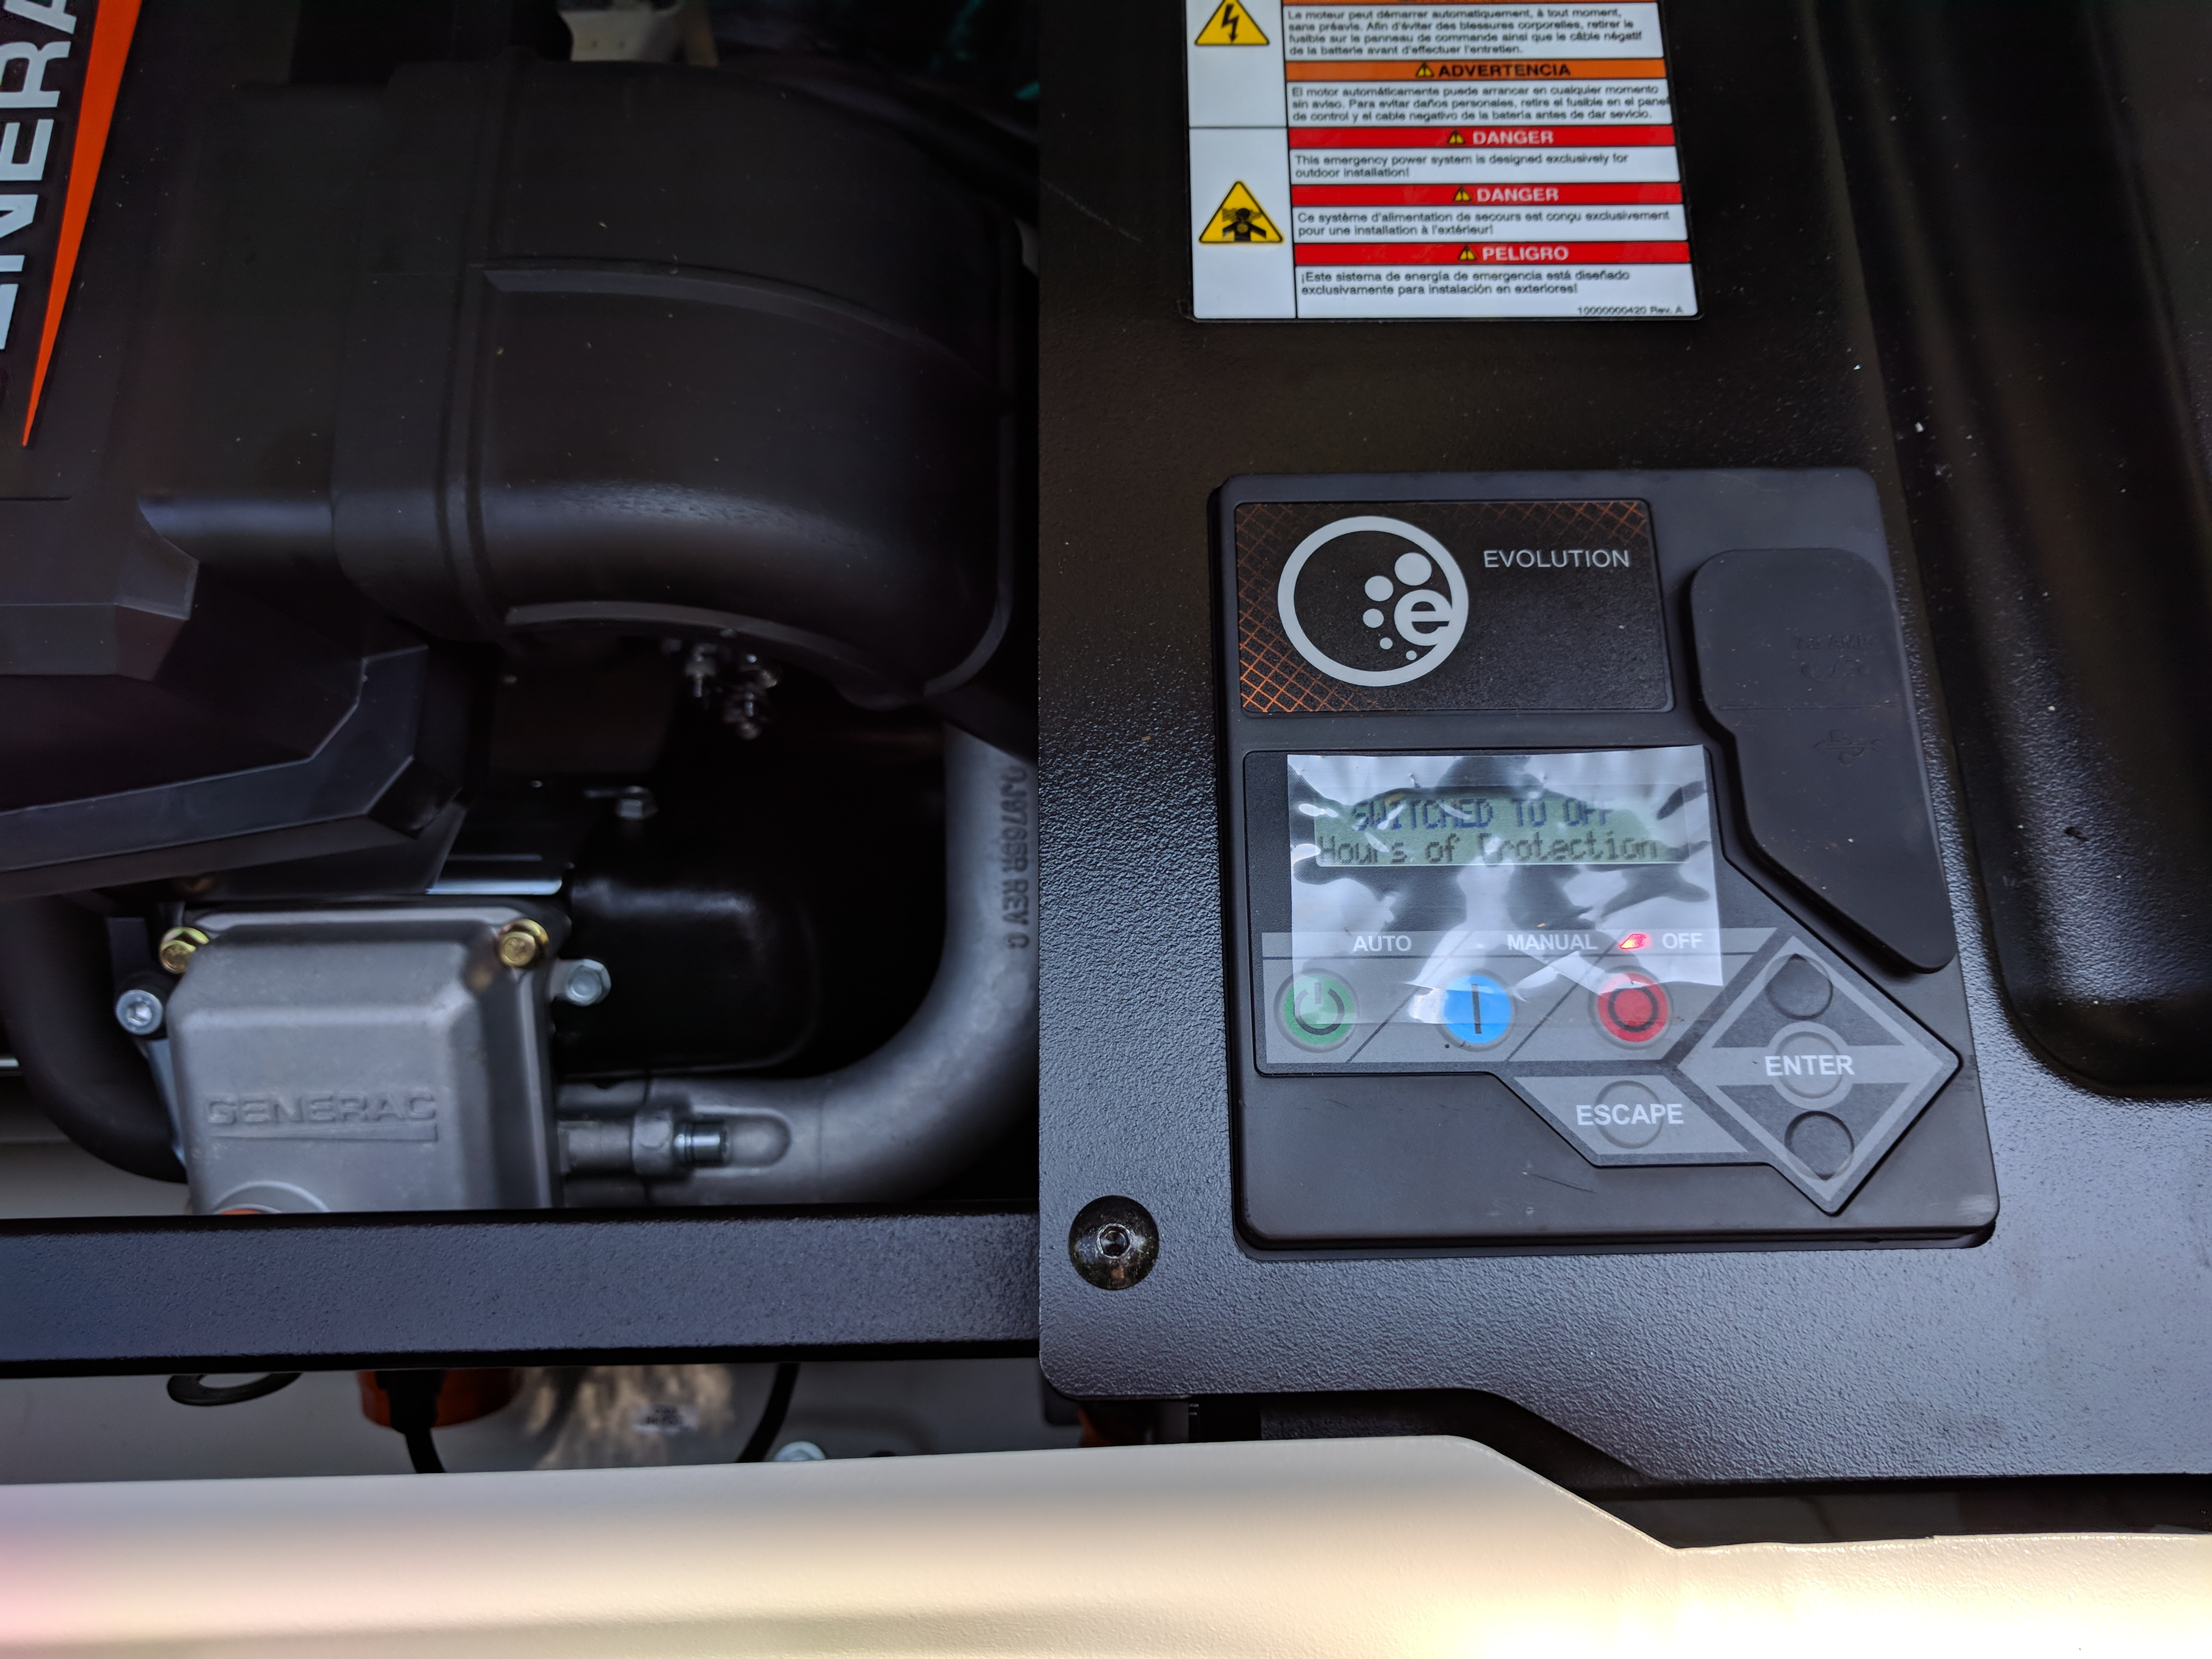 Incorrect amperage and power reported on model G0071420 22KW/999